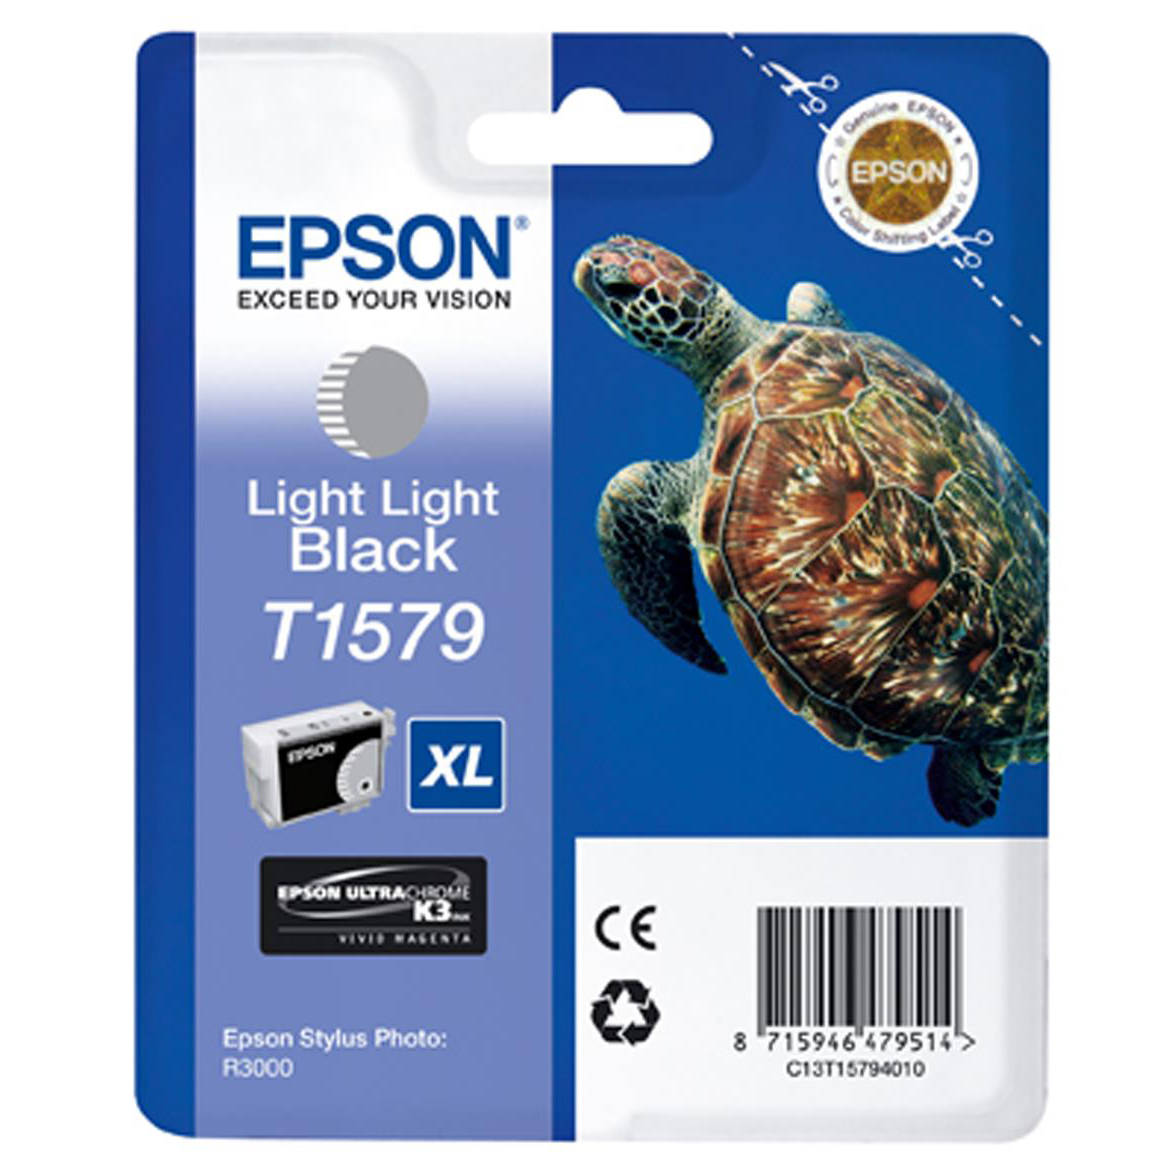 Epson T1579 Inkjet Cartridge Turtle 25.9ml Light Light Black Ref C13T15794010